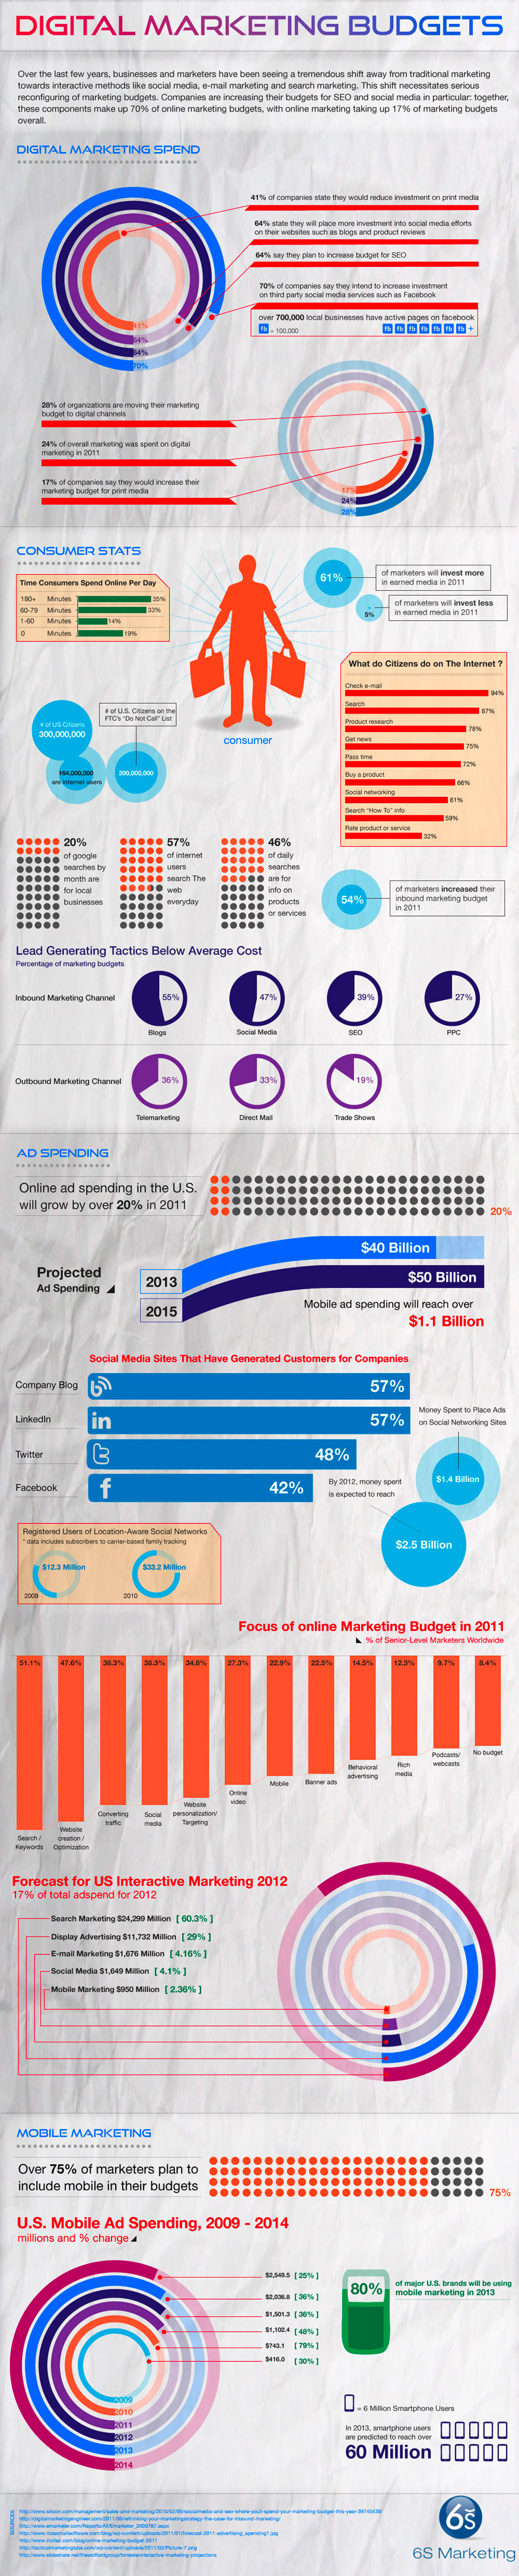 Infographic about digital marketing budget trends